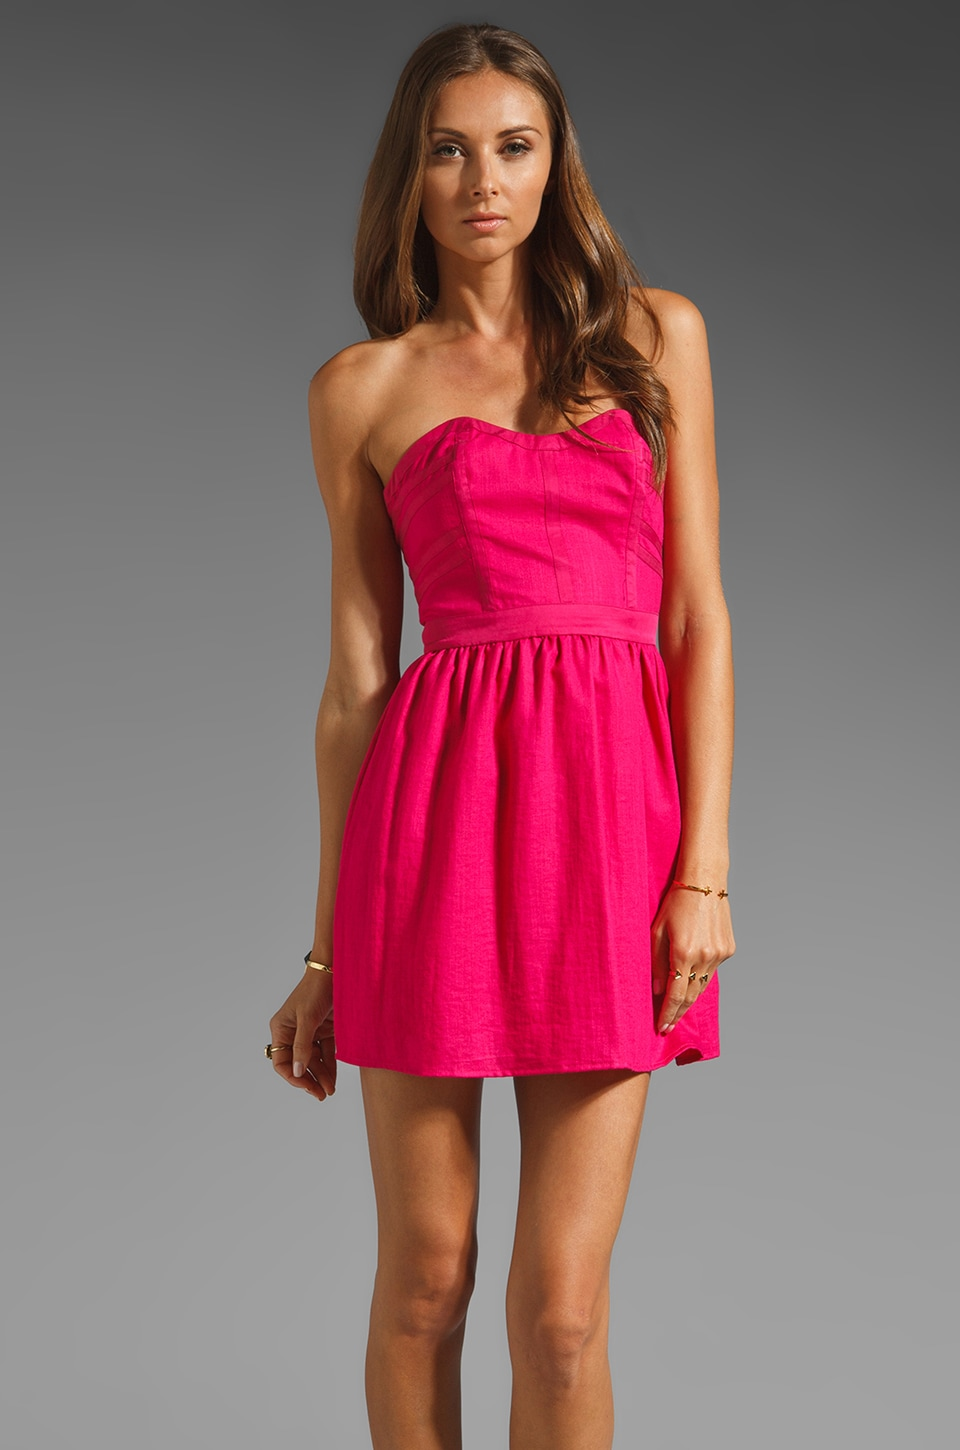 keepsake Still On My Mind Strapless Dress in Fuchsia